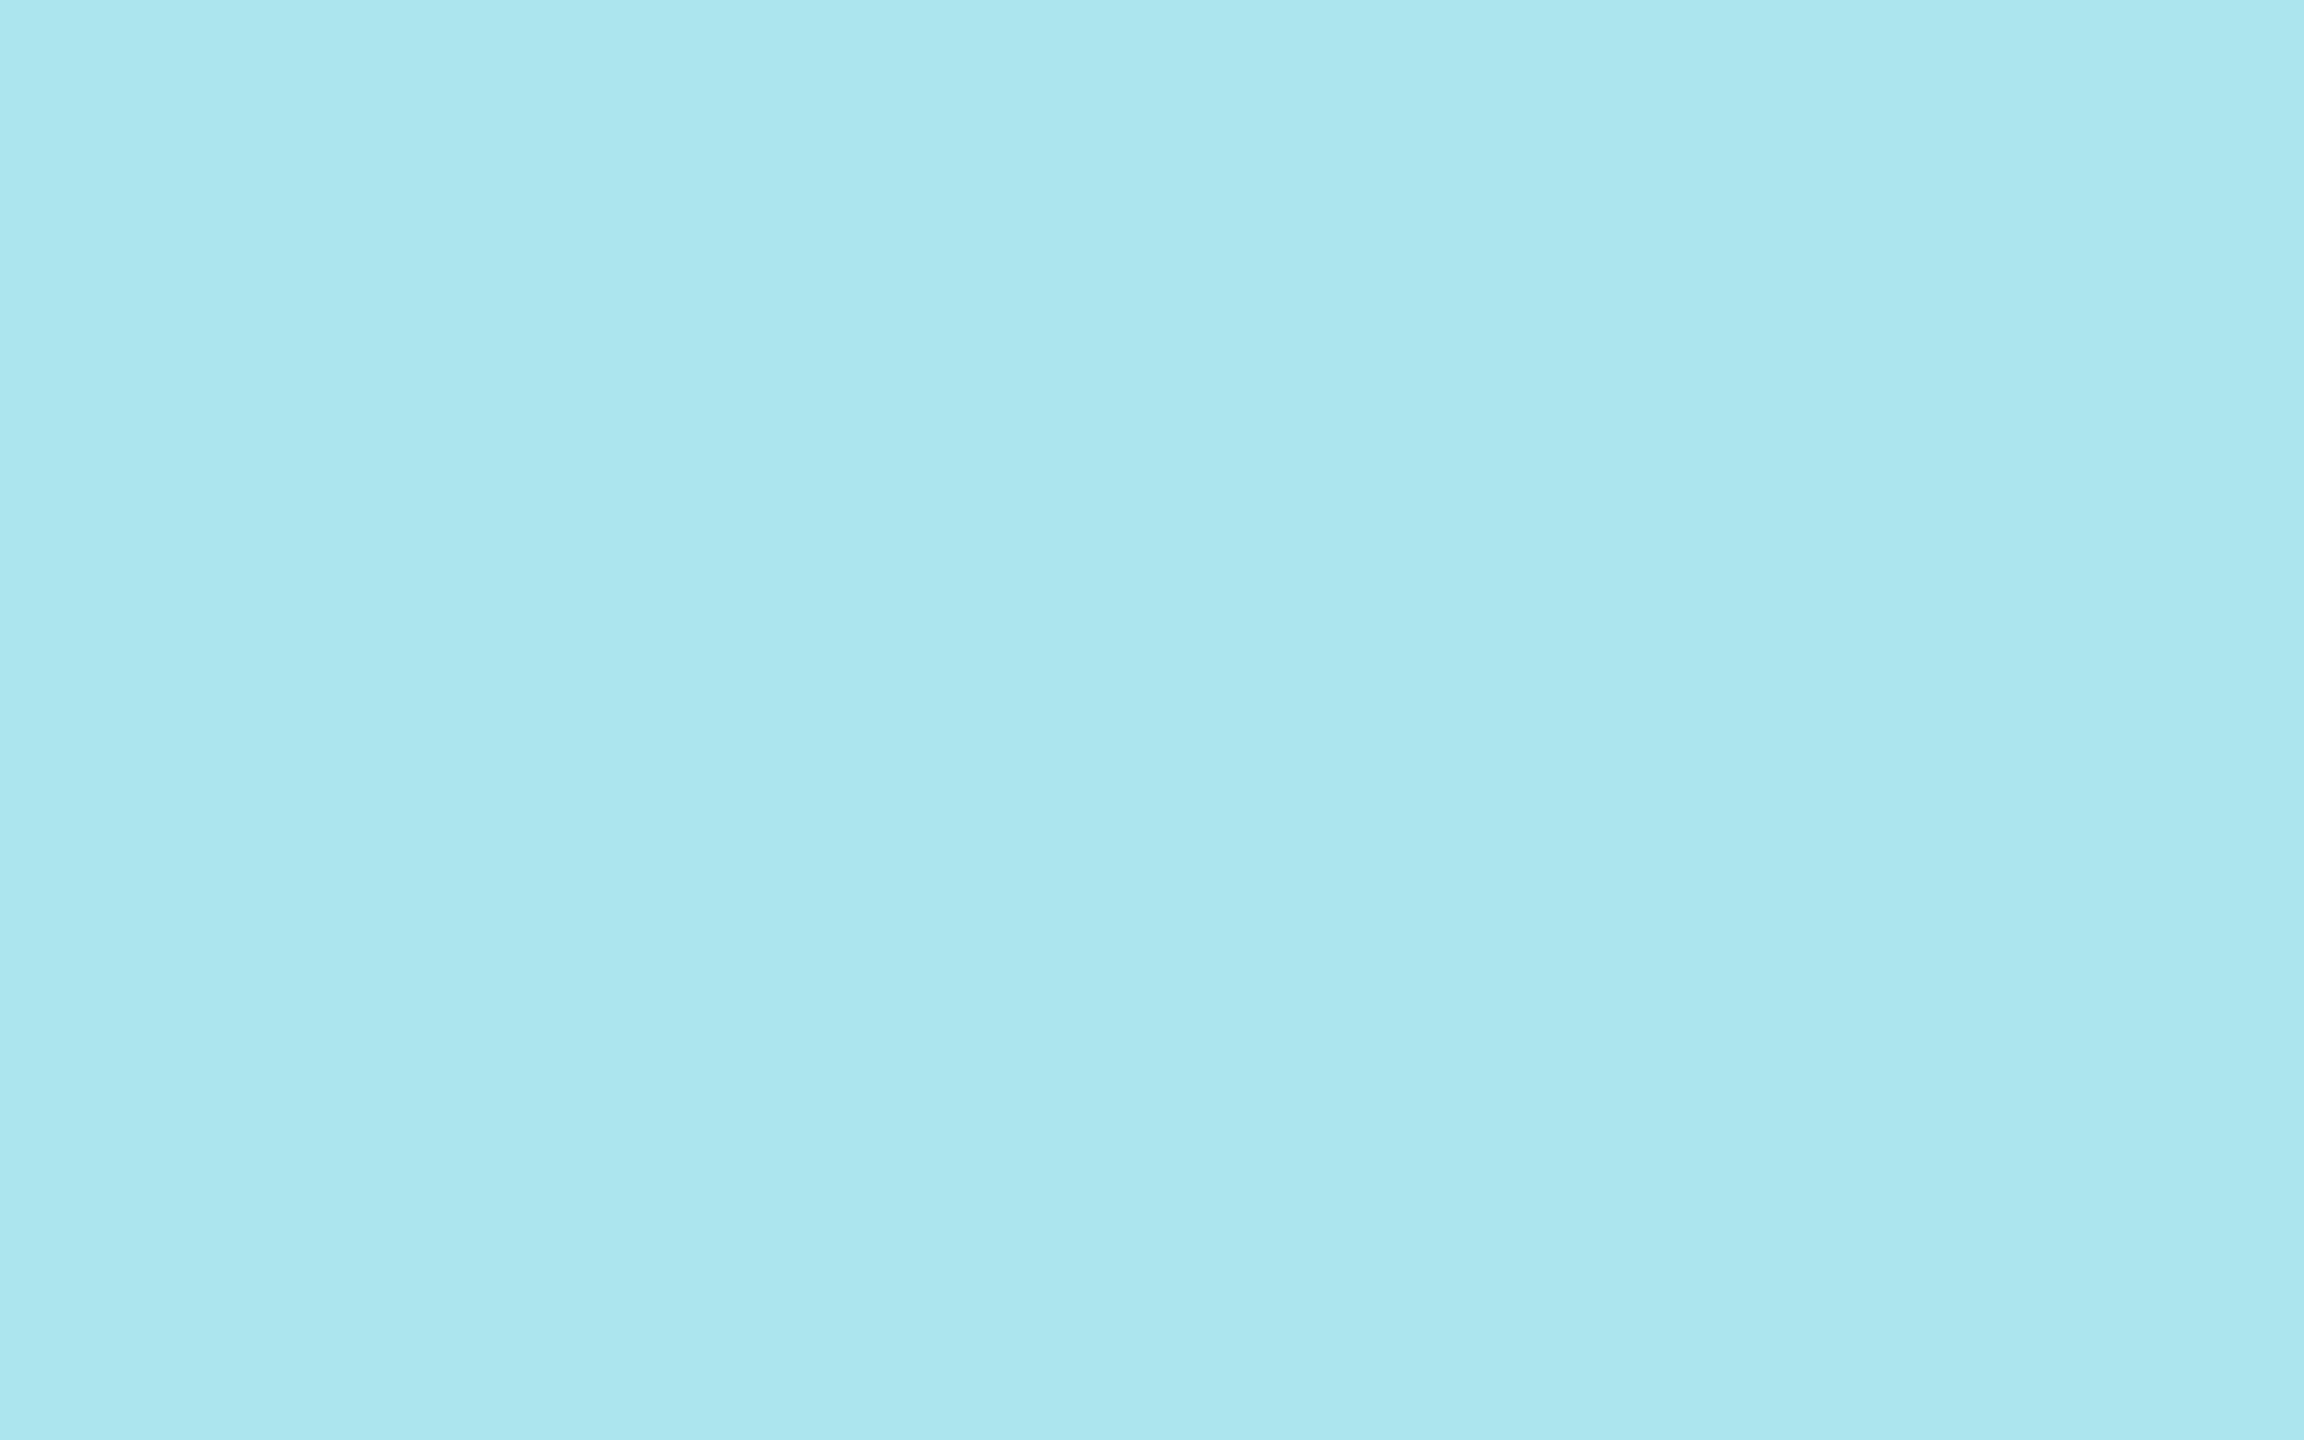 2304x1440 Blizzard Blue Solid Color Background